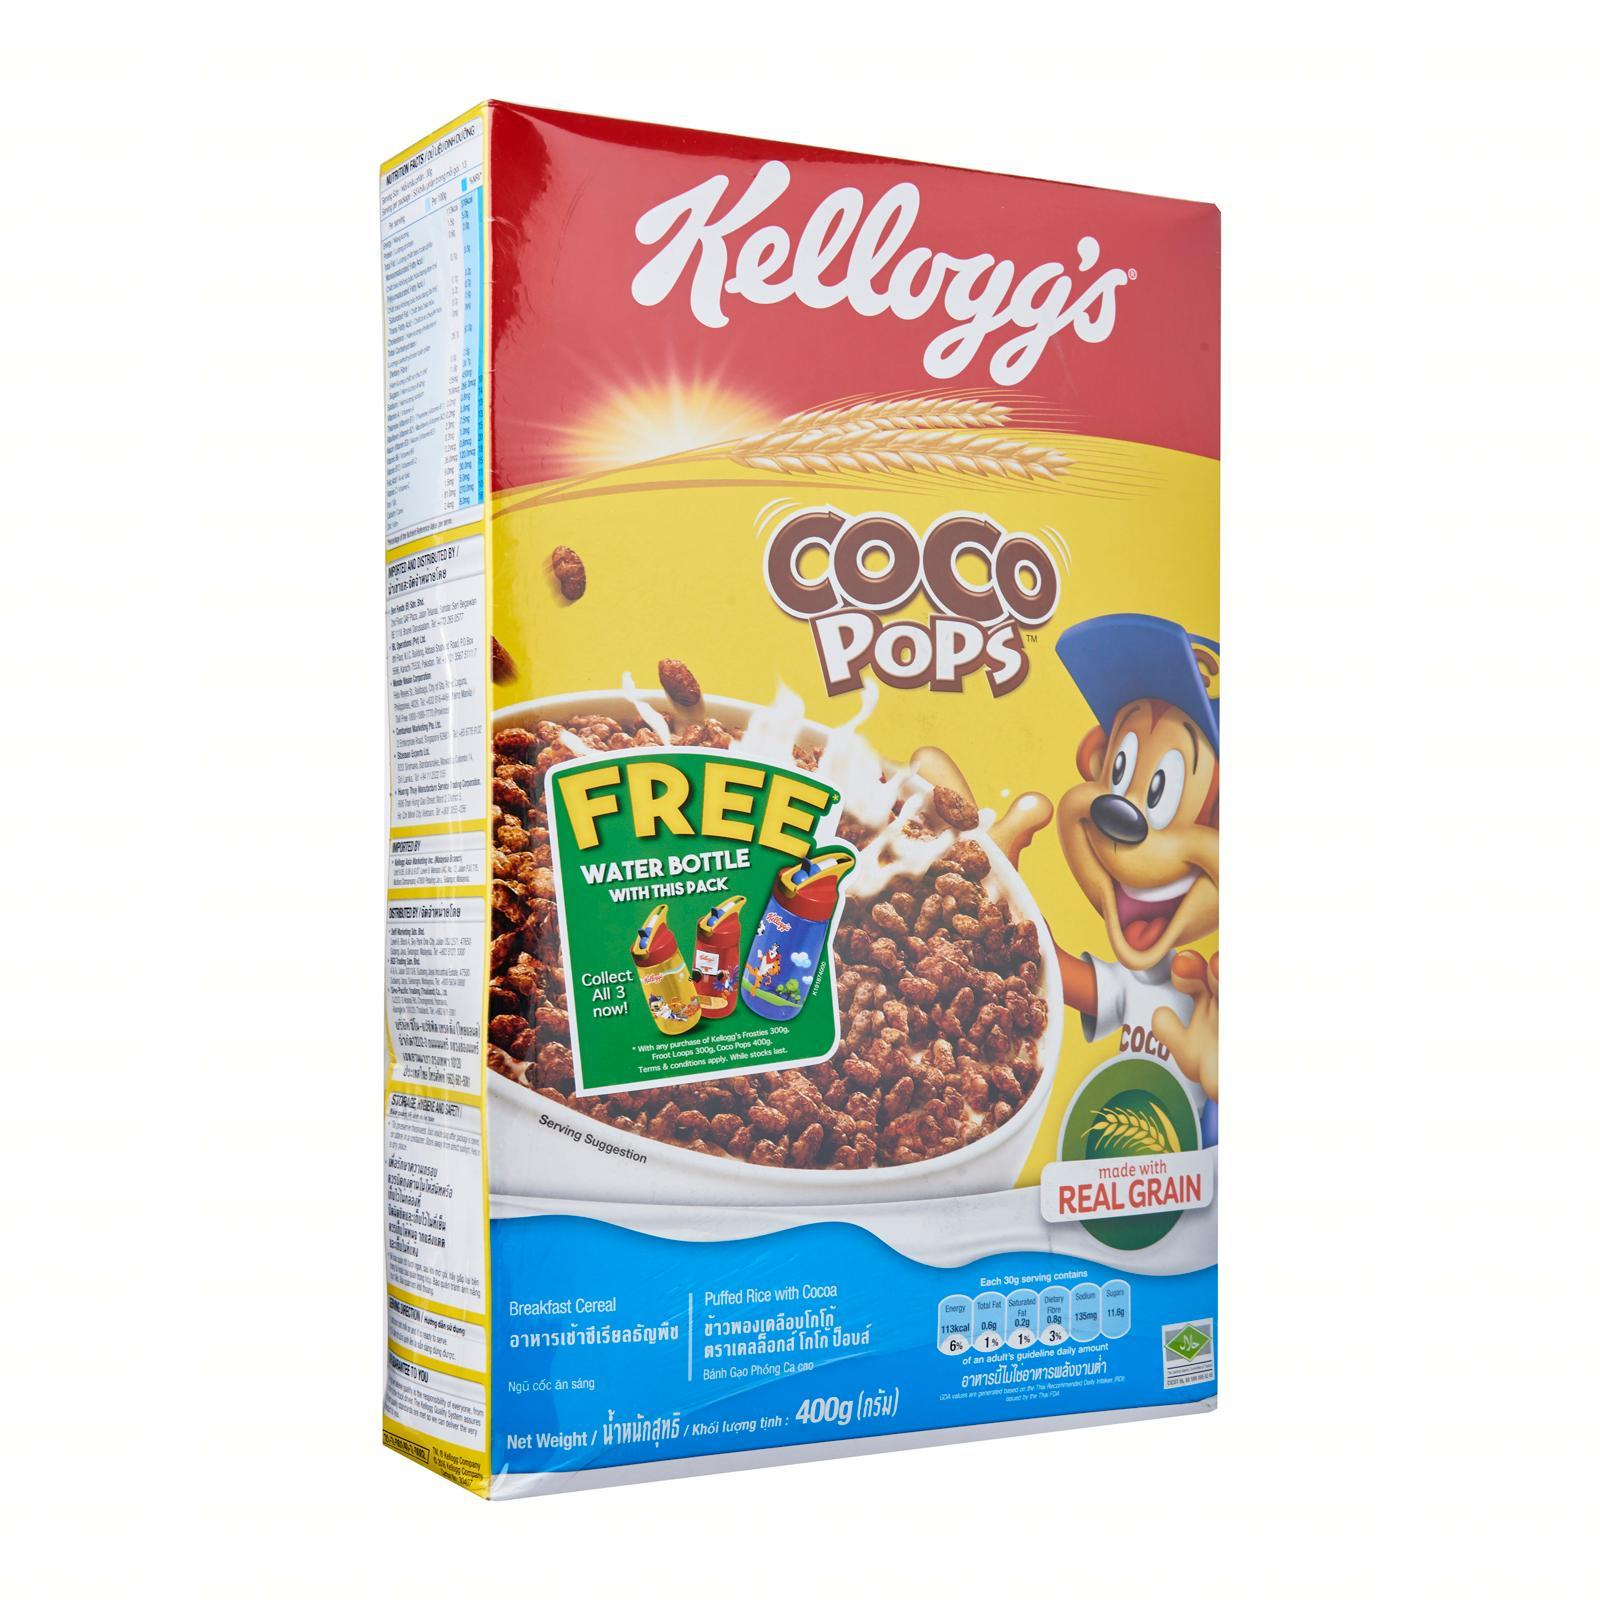 Kelloggs Coco Pop With Free Water Bottle By Redmart.